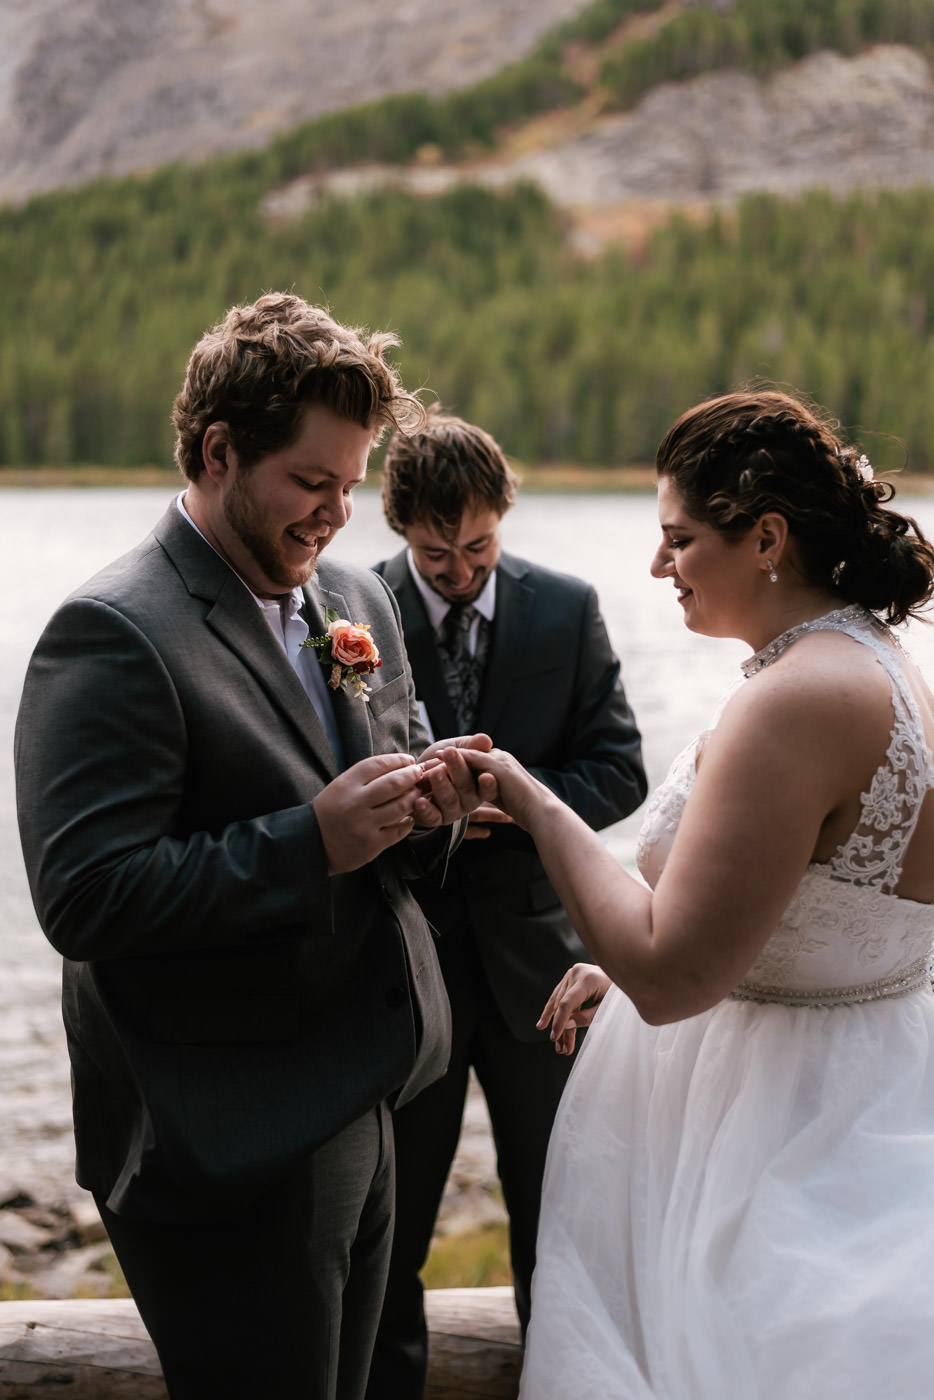 Groom slips the wedding ring onto his new wife's finger at their glacier elopement.